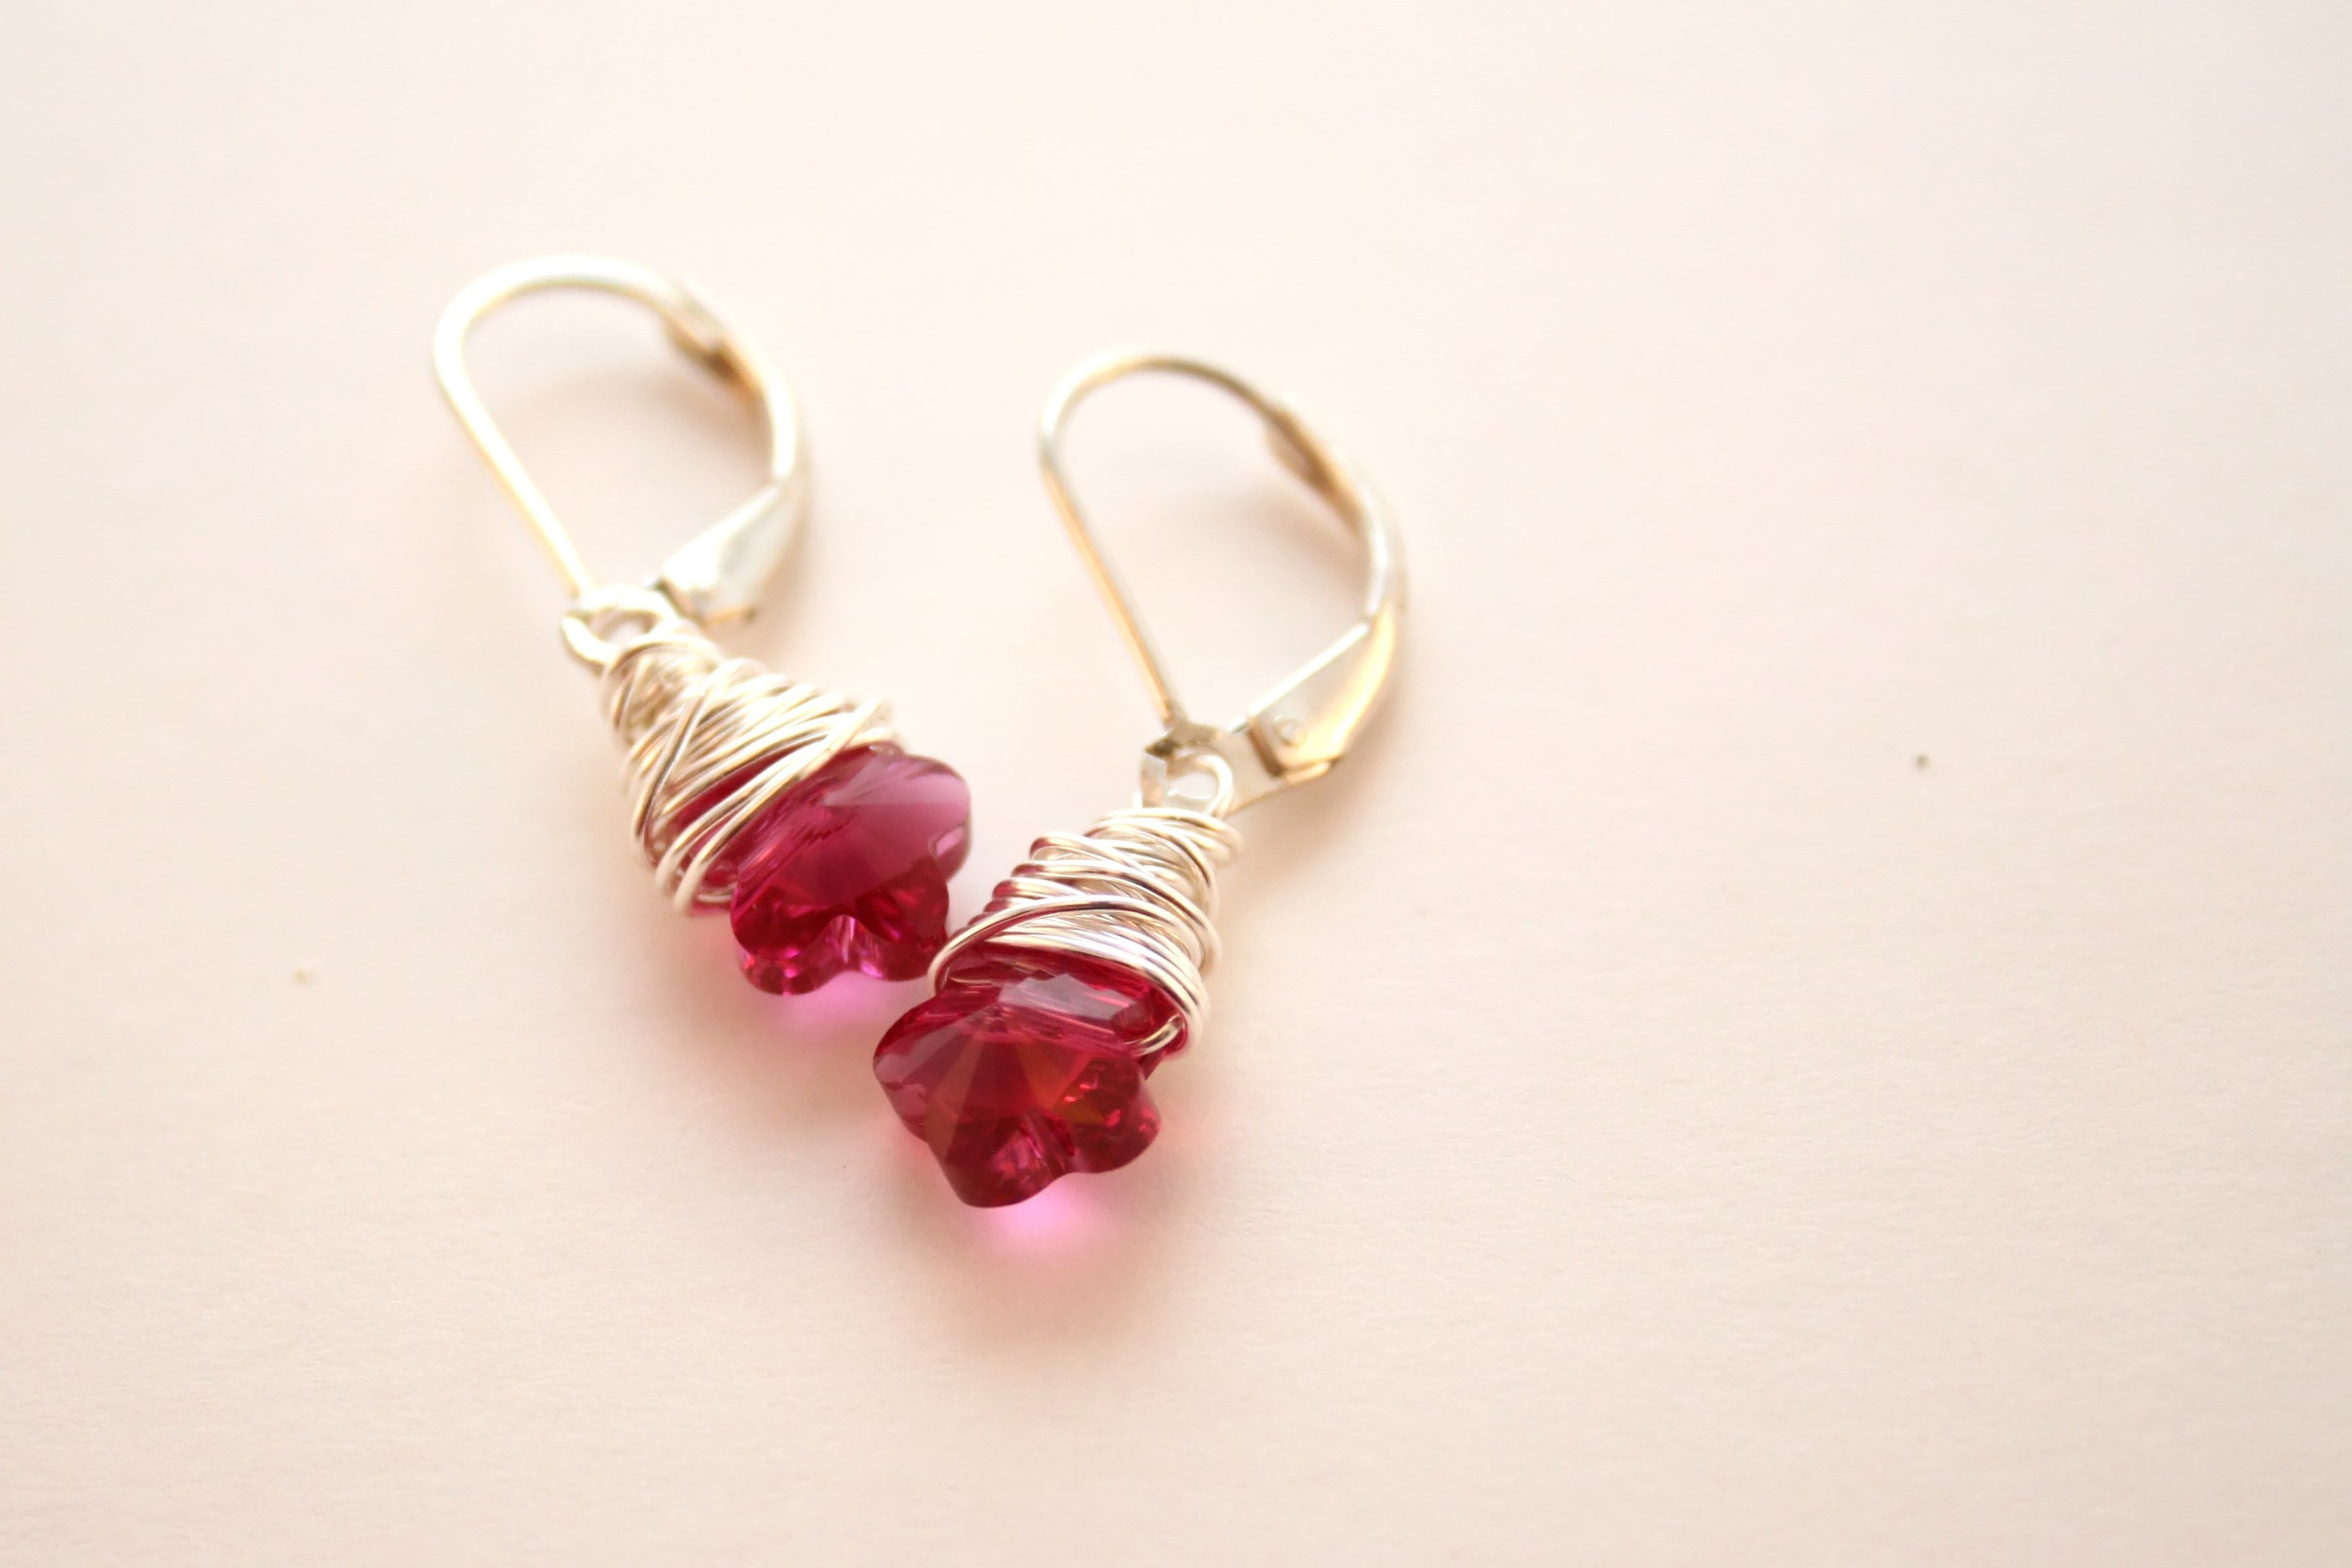 """1002- Sterling Silver Wire Wrapped Fuchsia Swarovski Crystal Flower Earrings $18 Description: Bright and petite sweet flowers ready for your collection!! Wire wrapped with Sterling silver and hung delicately from Sterling silver lever backs. These measure approximately 1"""" from top of the lever backs."""